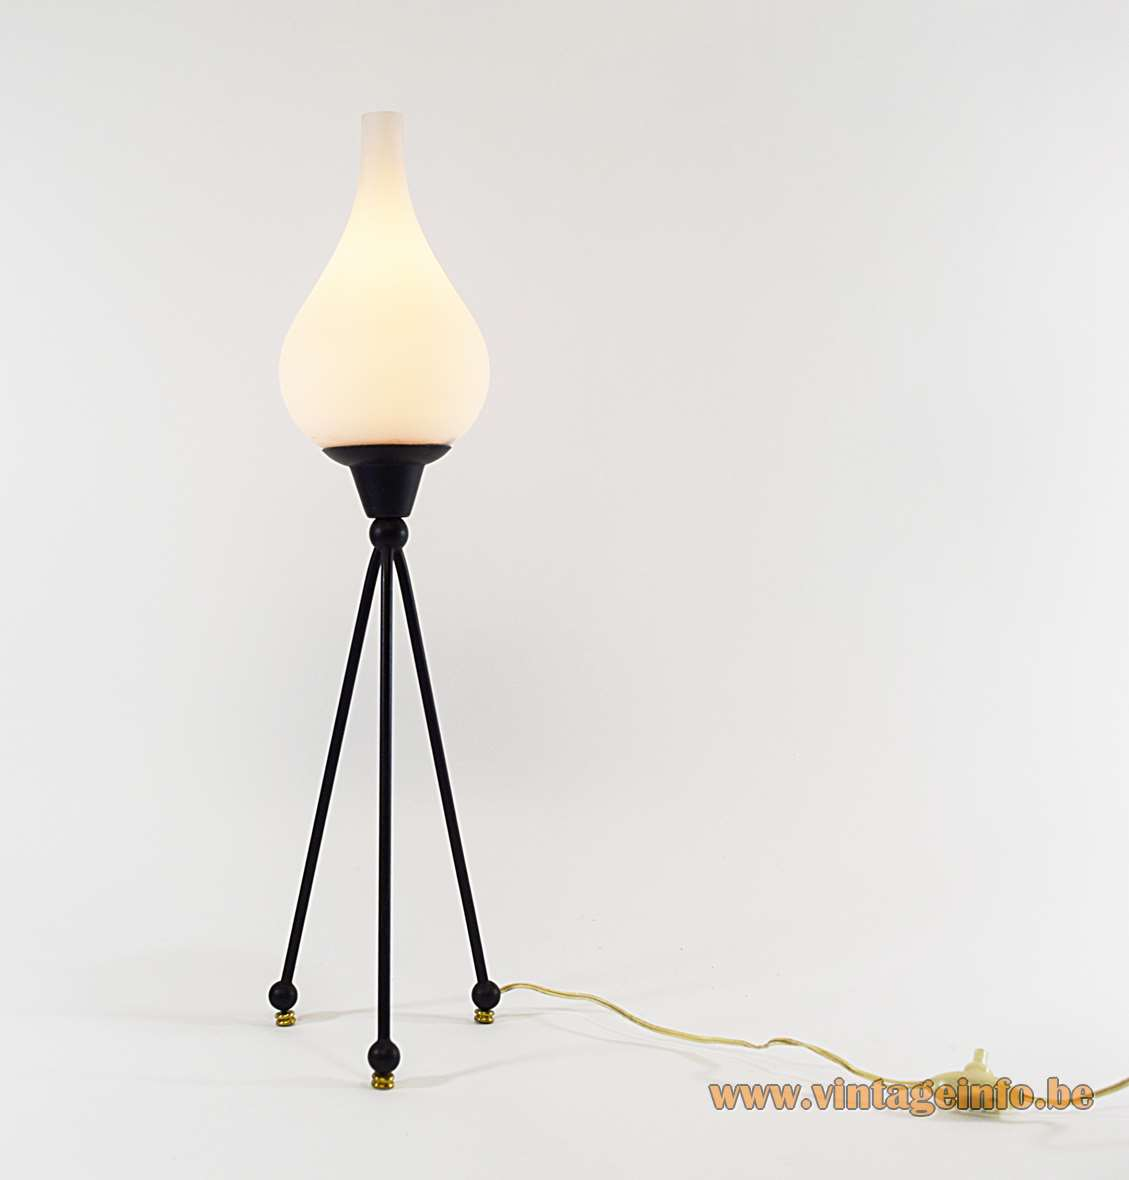 Fratelli Rumi Tripod Table Lamp Vintage Info All About